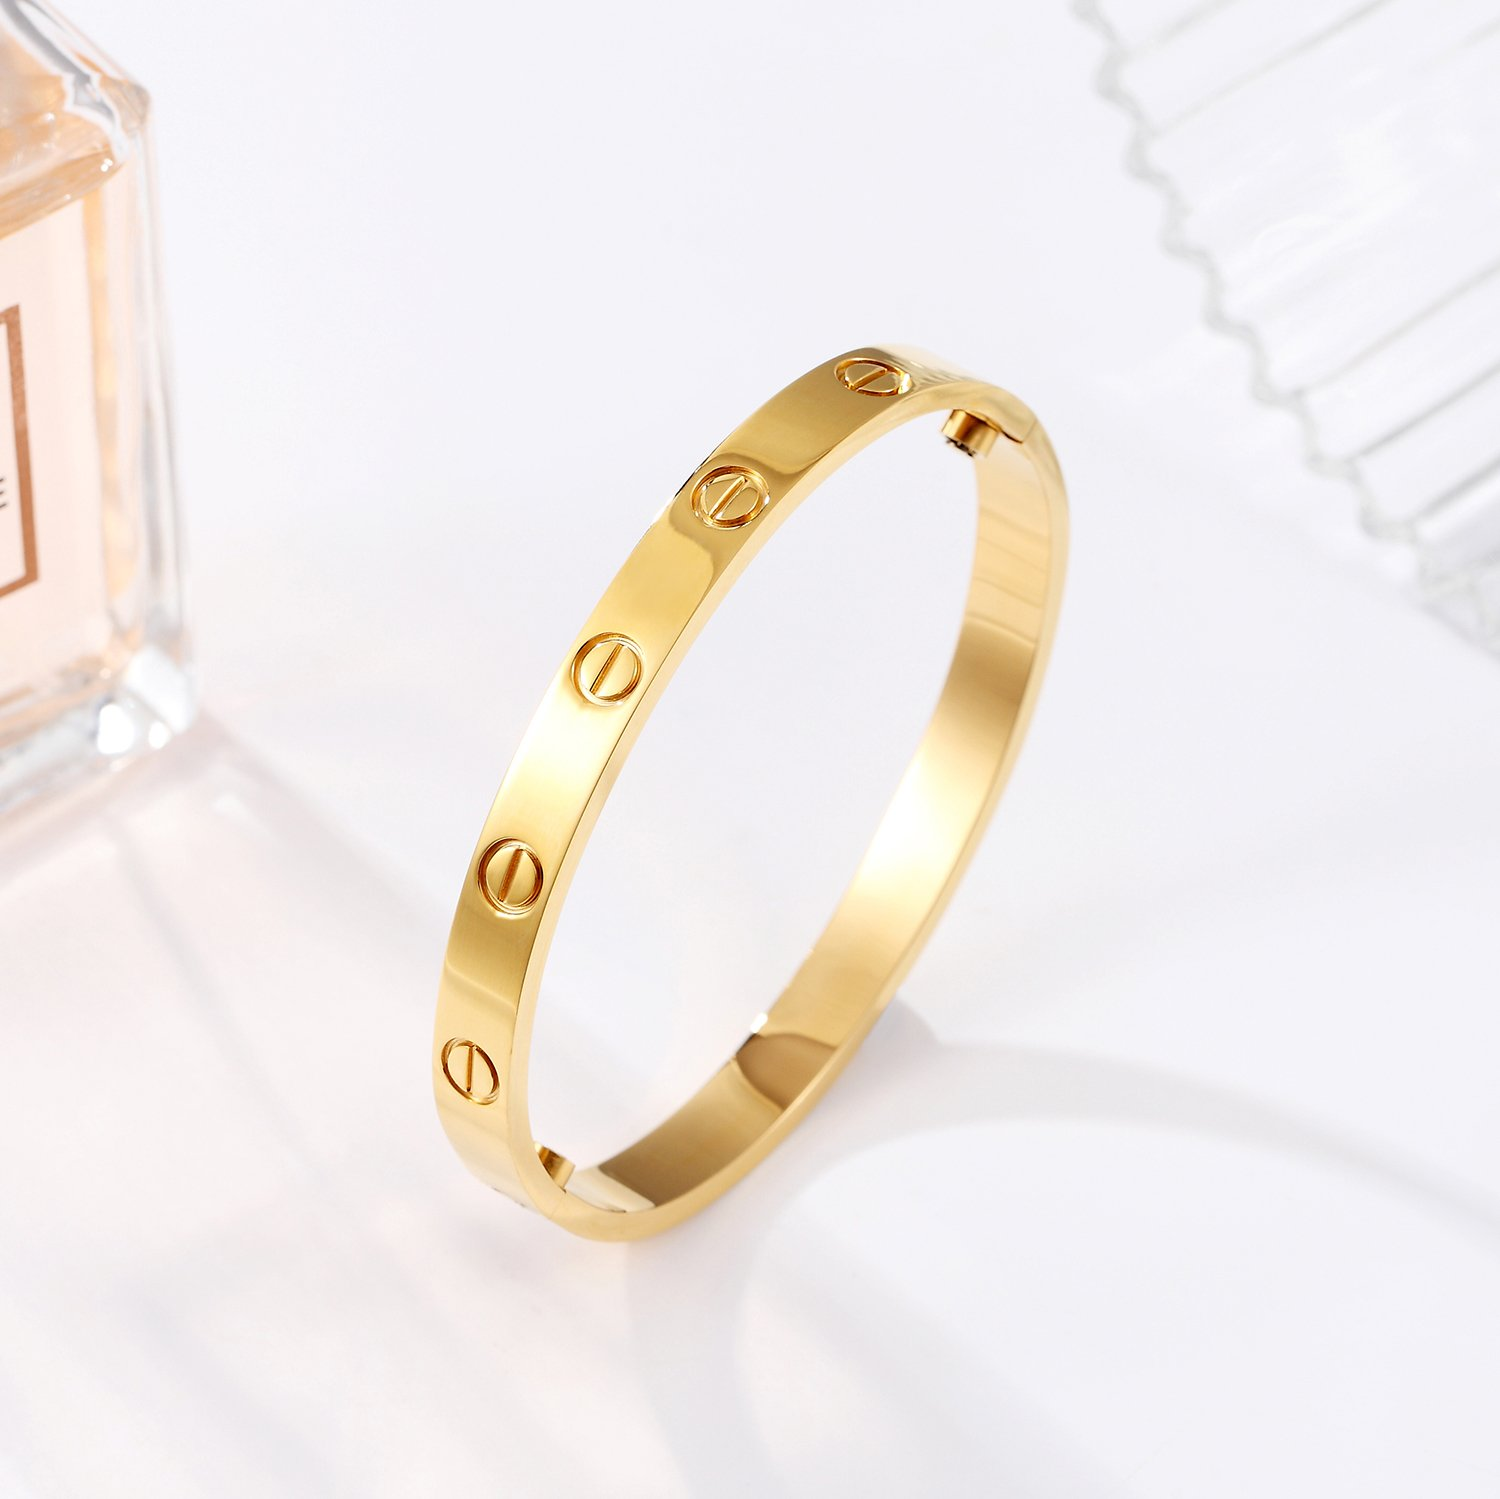 Z.RACLE Love Bangle Bracelet Stainless Steel Screw - Best Gift Love - 6.3IN Gold by Z.RACLE (Image #2)